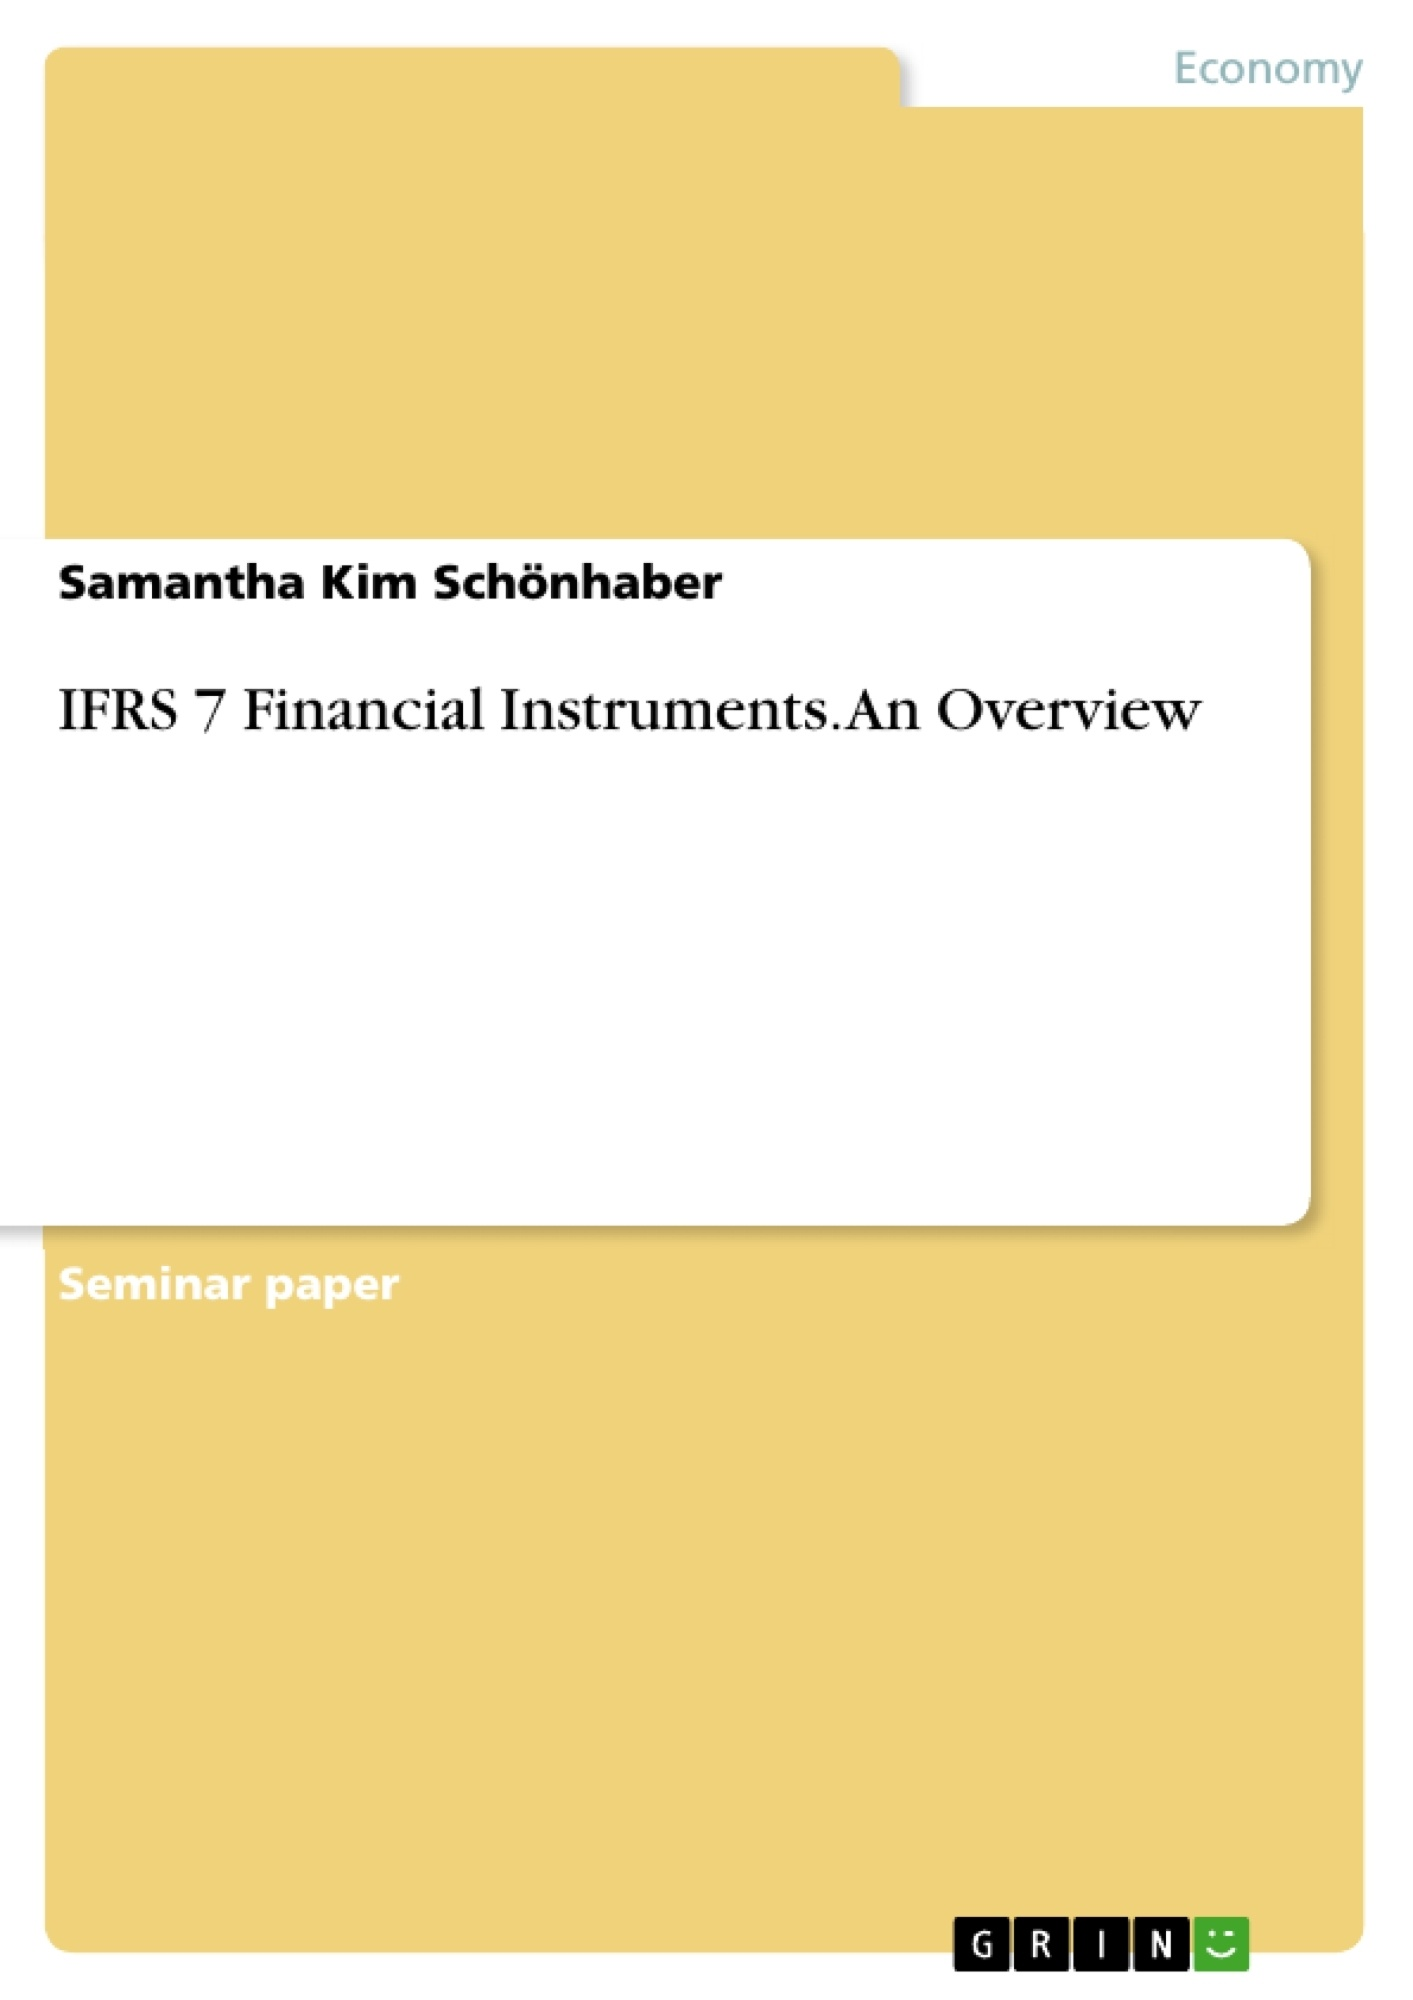 Title: IFRS 7 Financial Instruments. An Overview